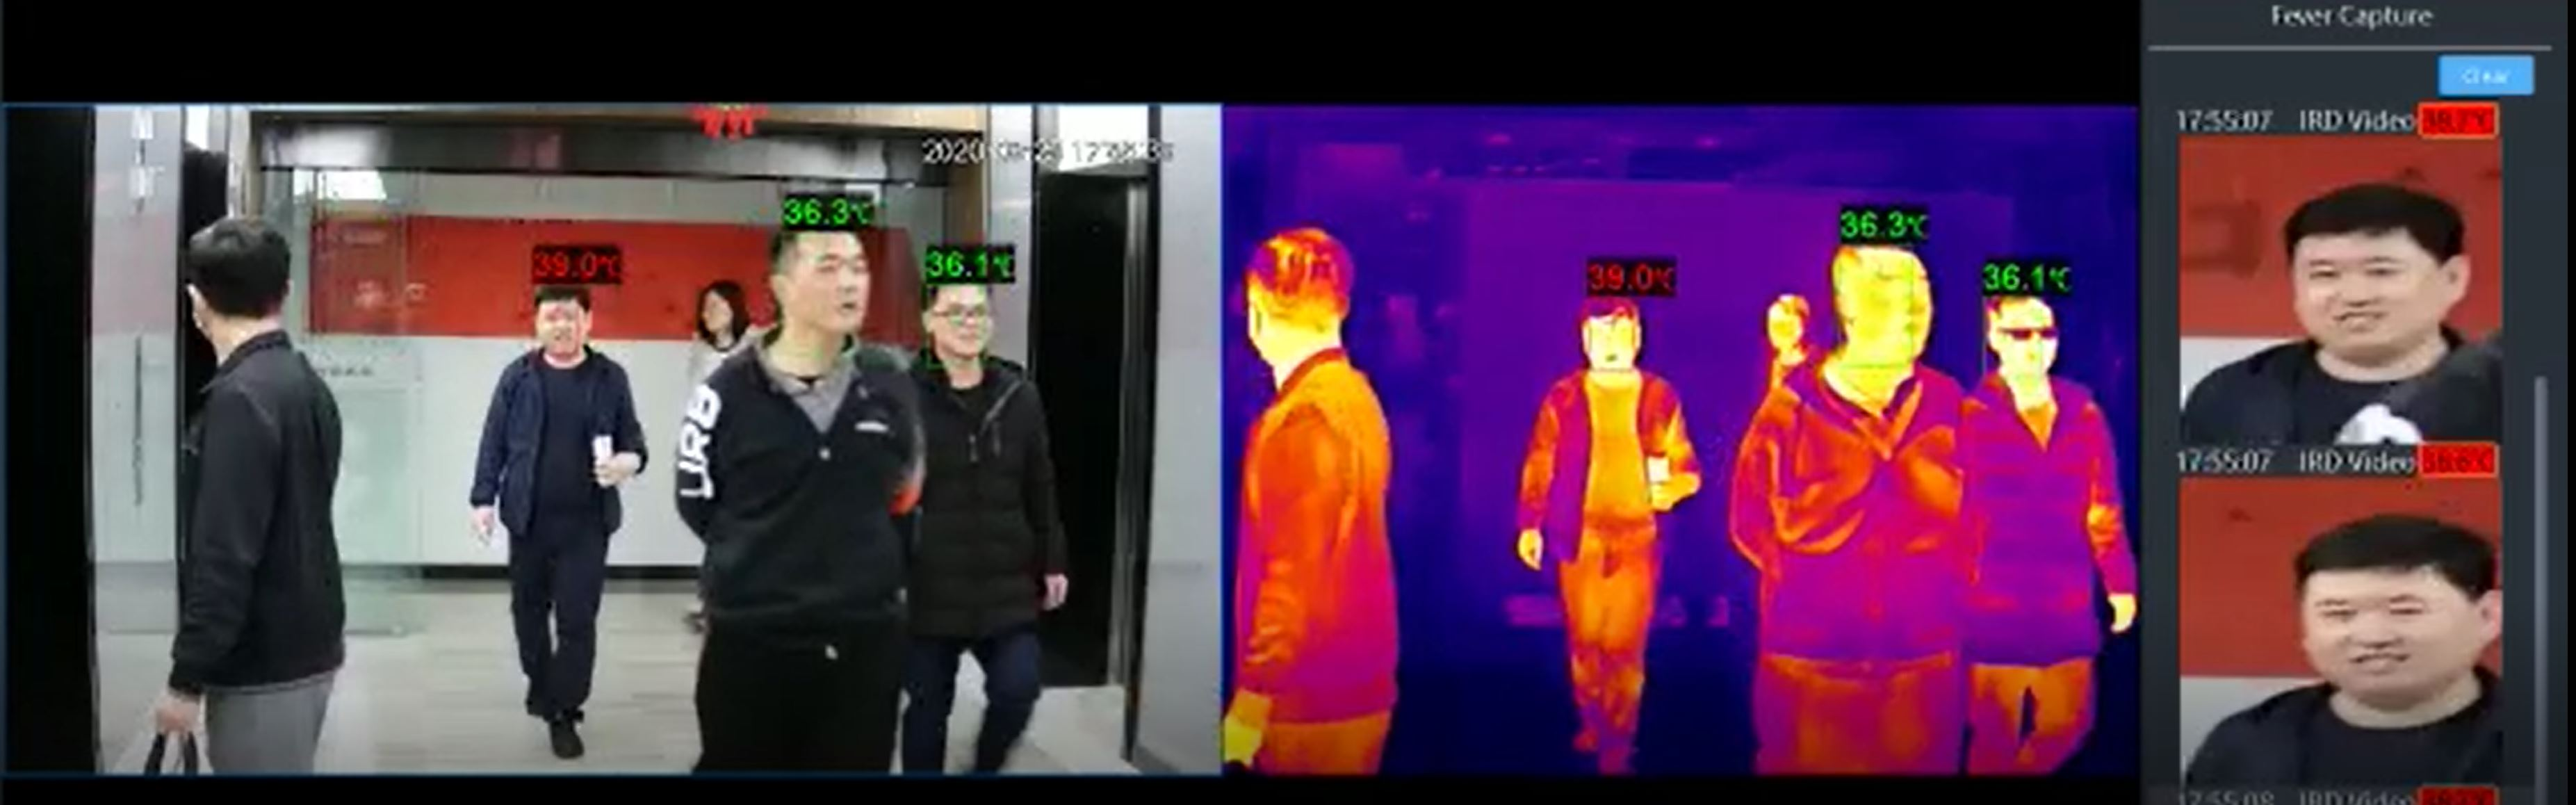 - Infrared Body Temperature Detection Thermal Camera